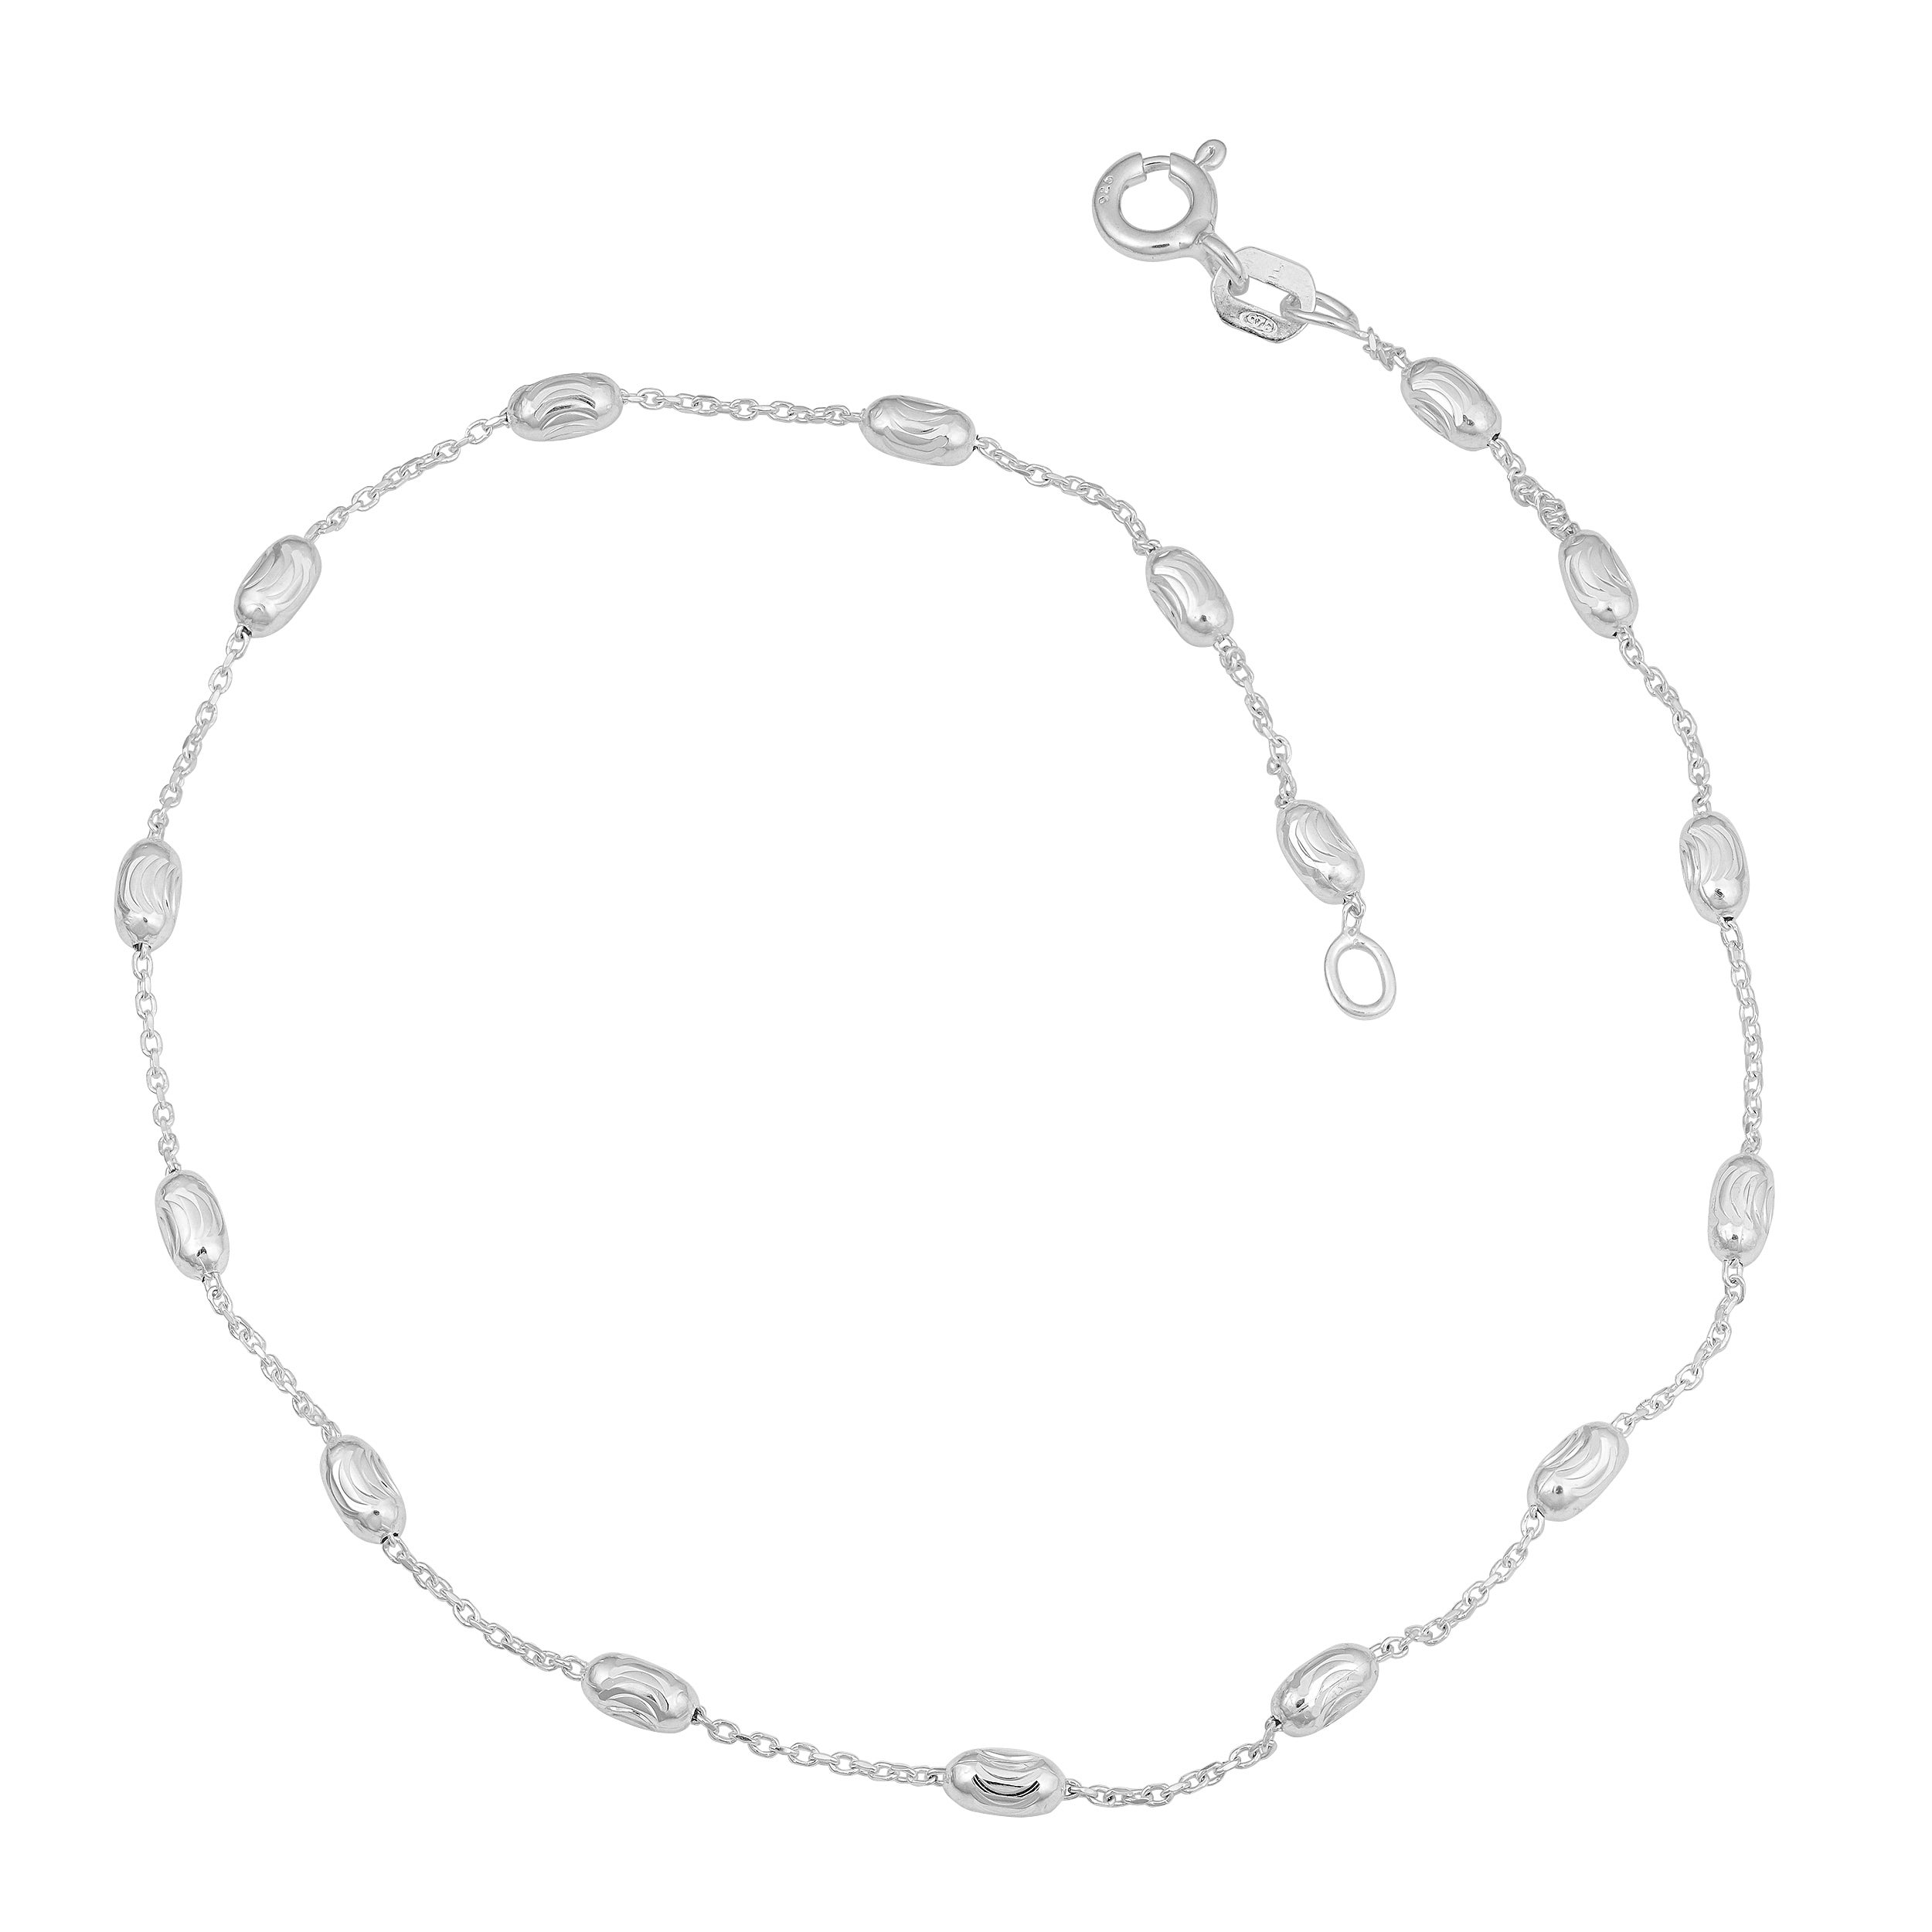 anklet unique jewelry genuine sterling product silver buy ssa bracelet